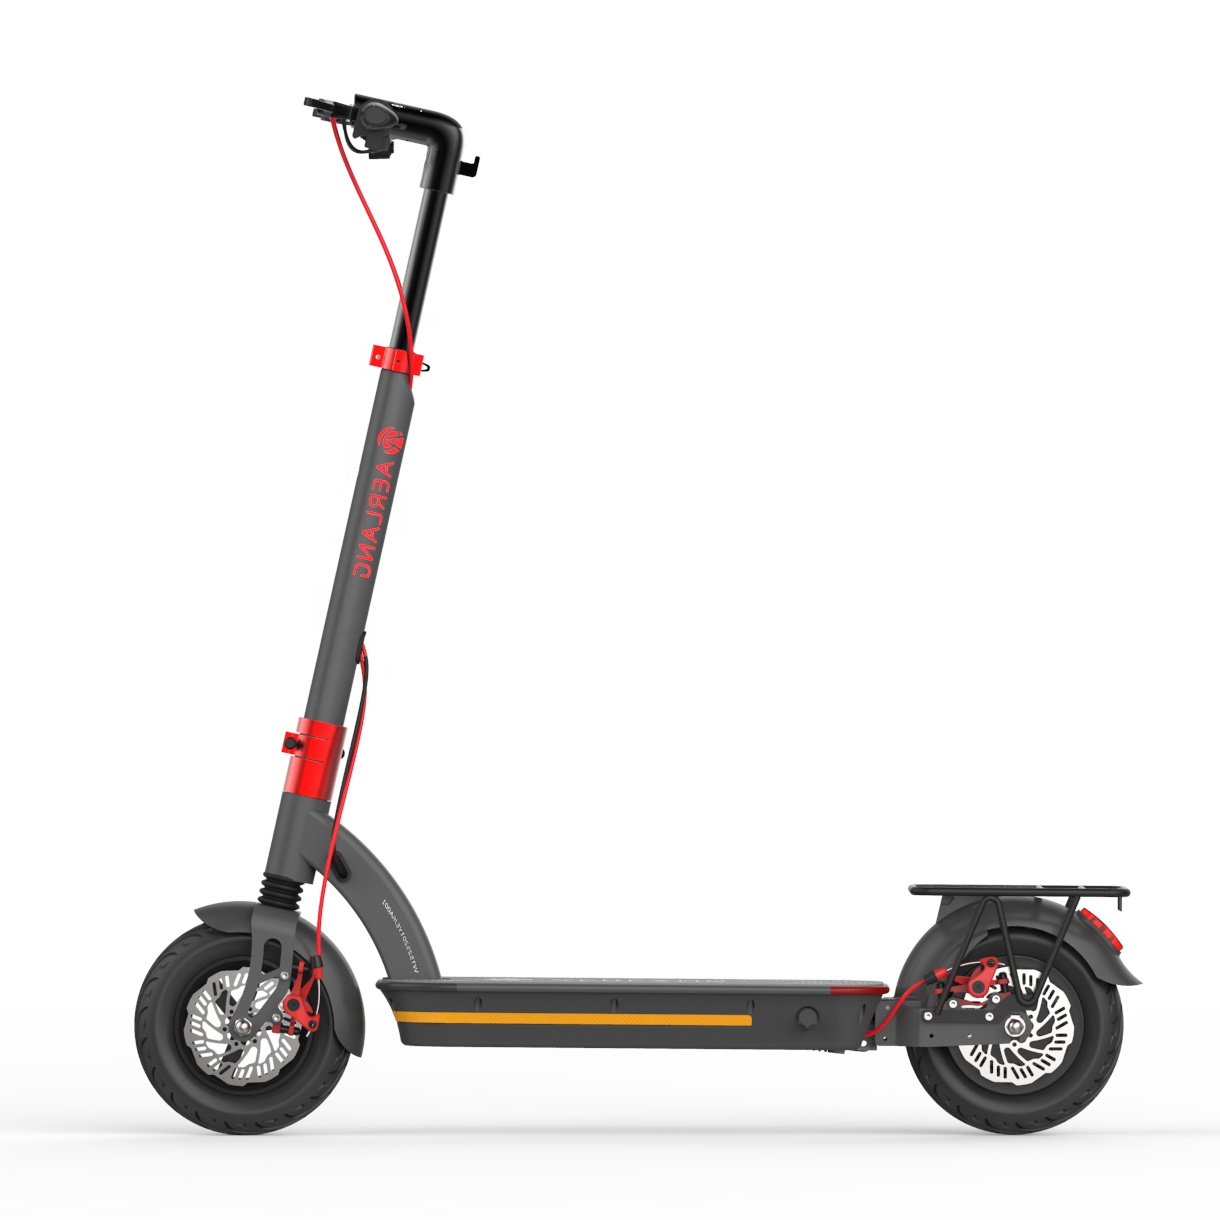 Aerlang H6-A 10 inch foldable <strong>electric</strong> scooter for adults